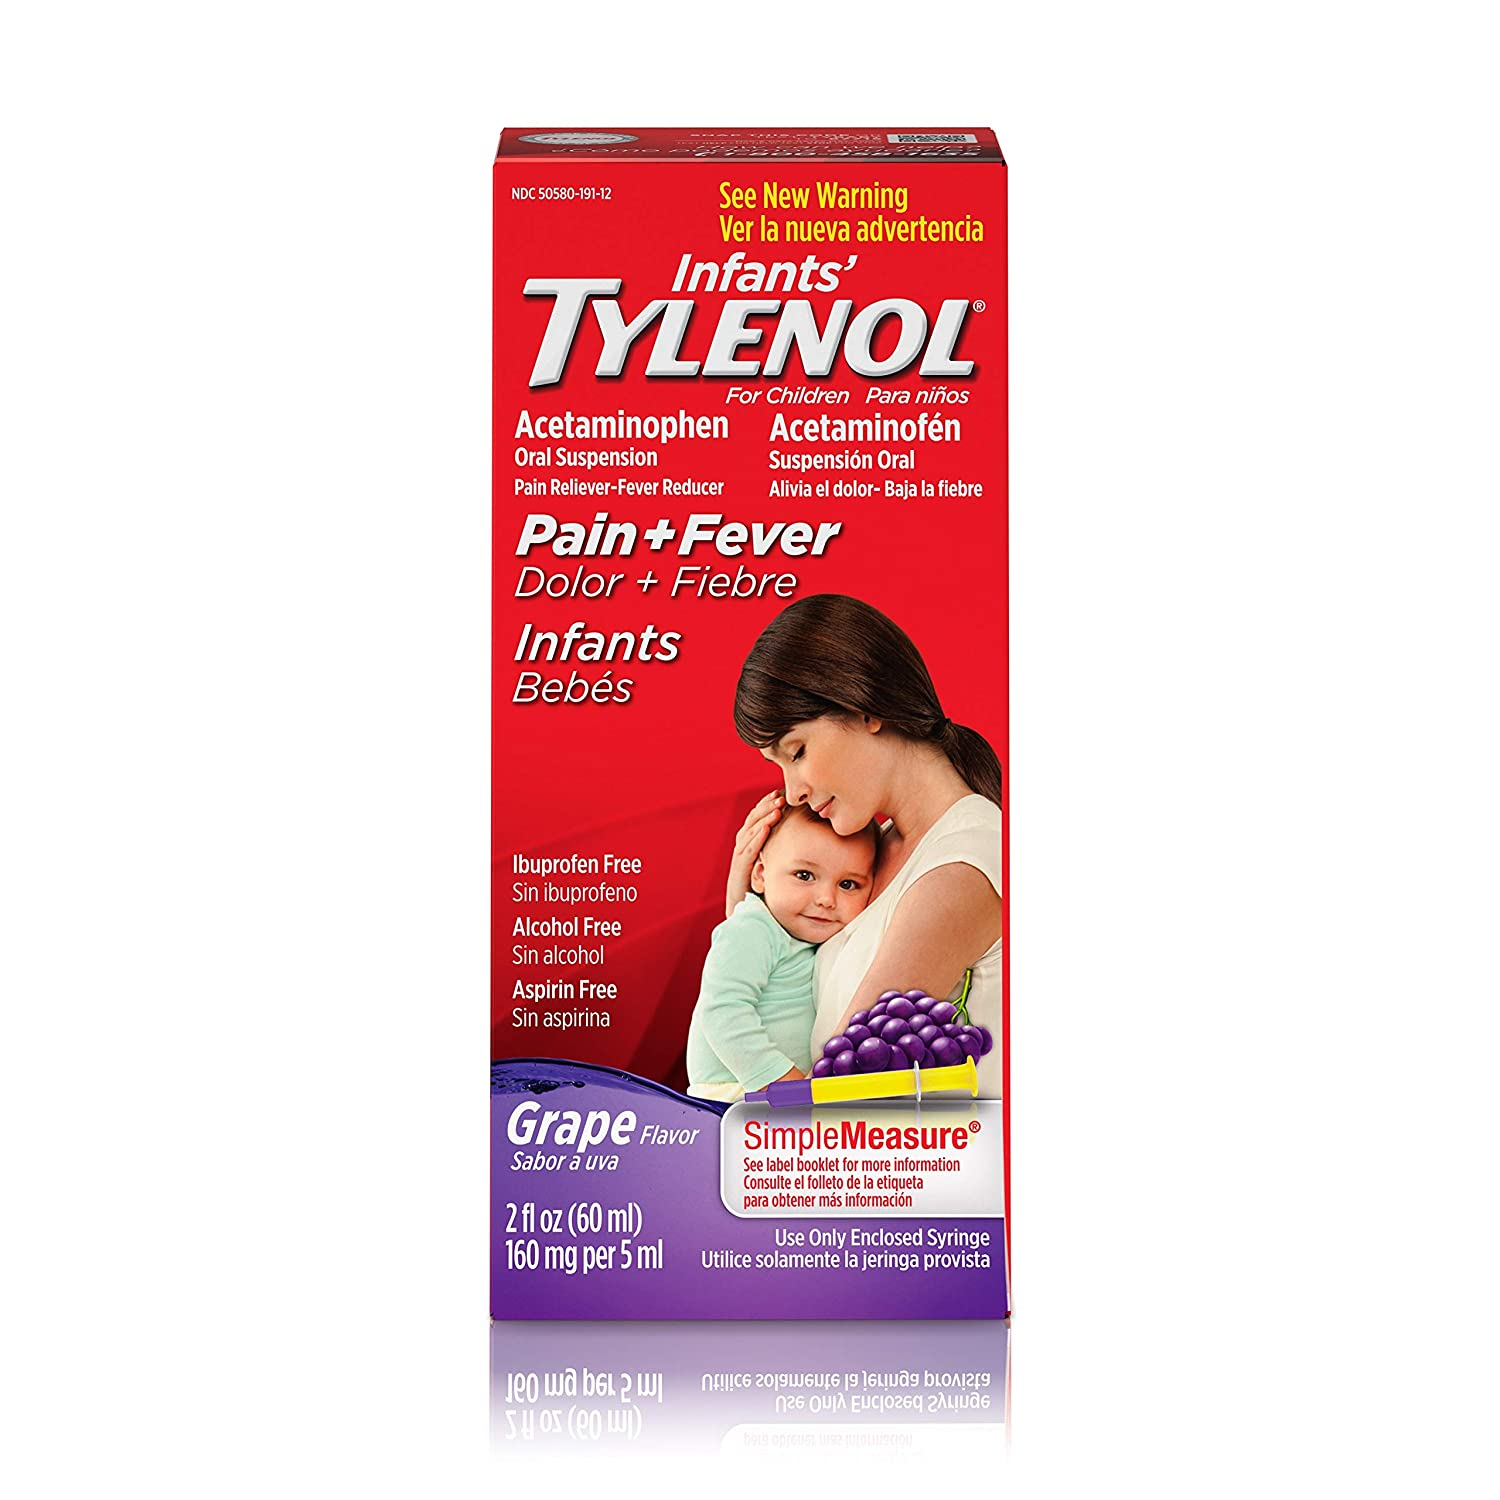 5 Best Fever Reducers for Toddlers Nominated by Parents Reviews in 2021 7